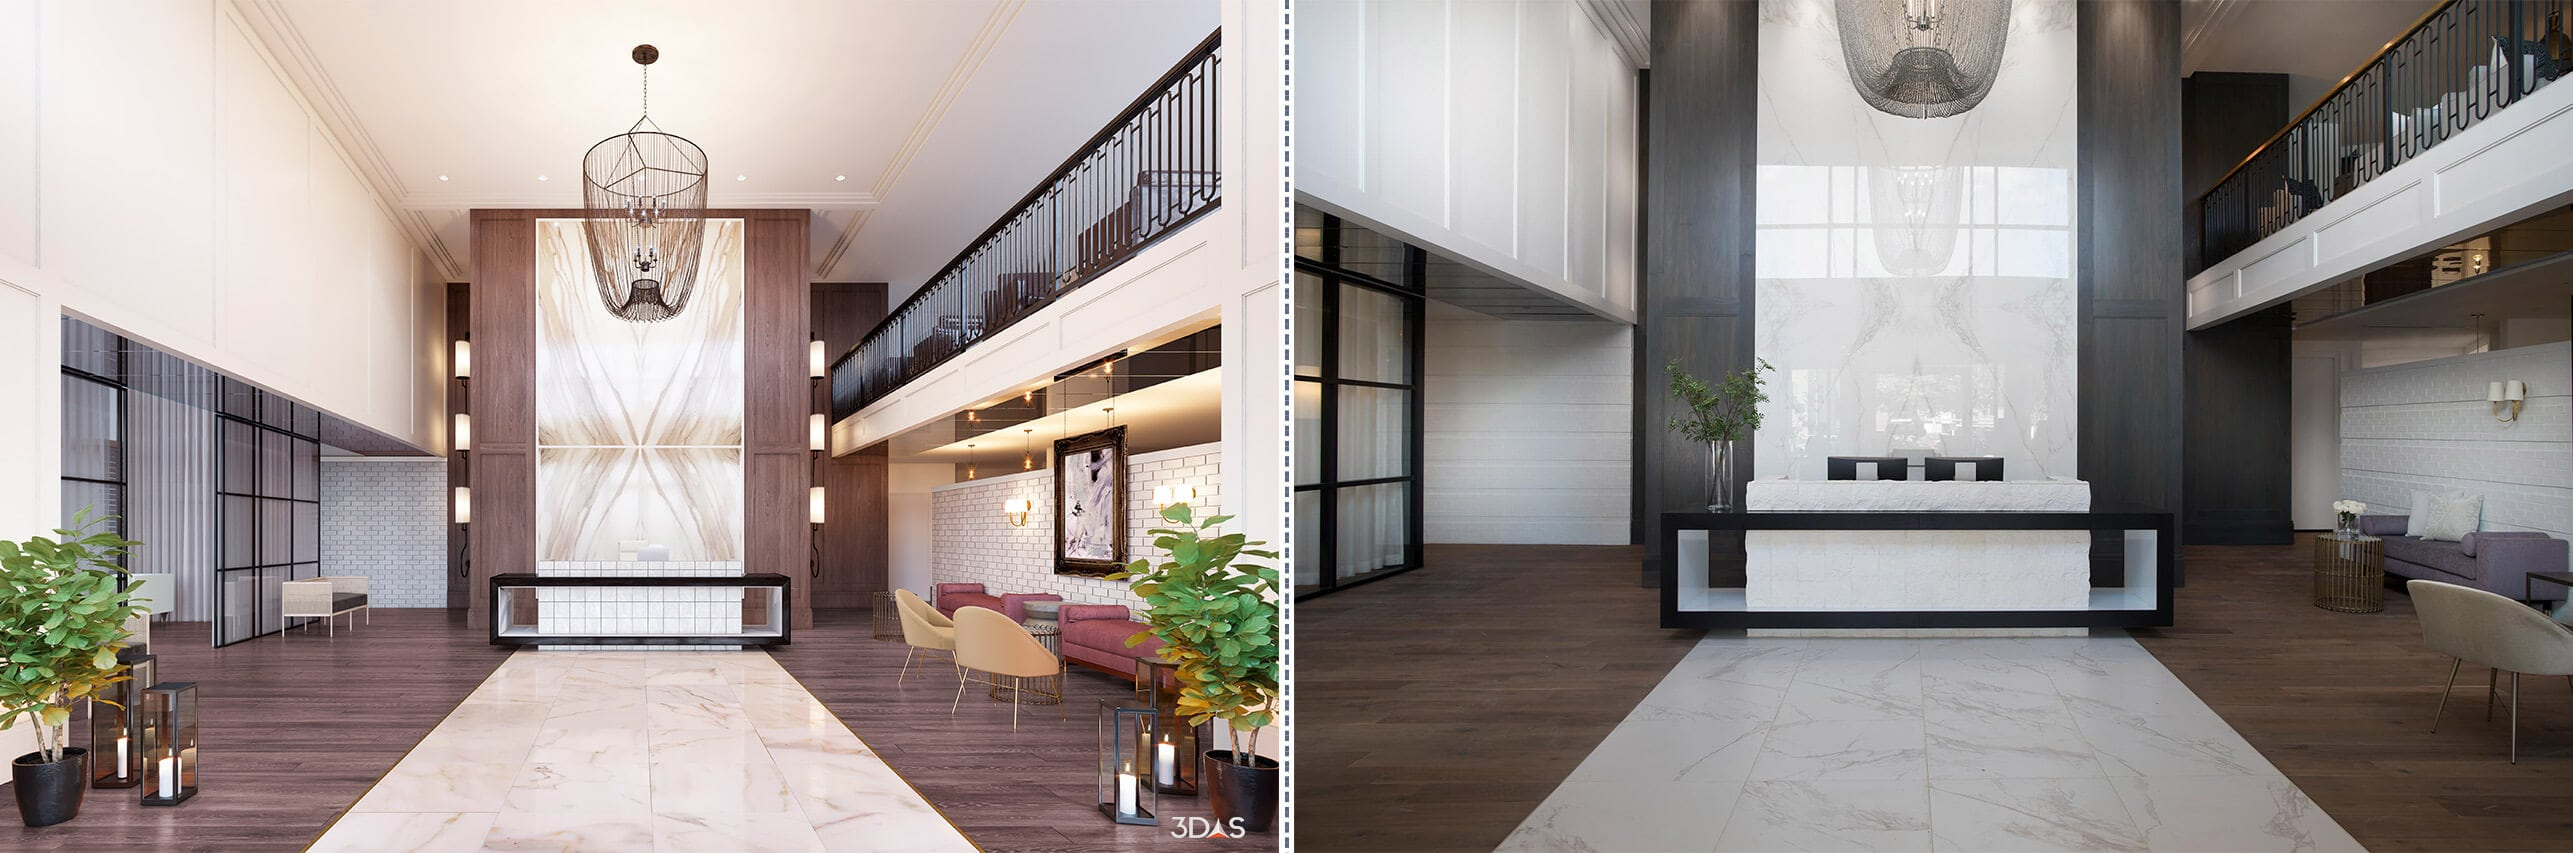 3D Rendering or Photo - Which is the Better Huntley Park Avenue Lobby Interior Image?